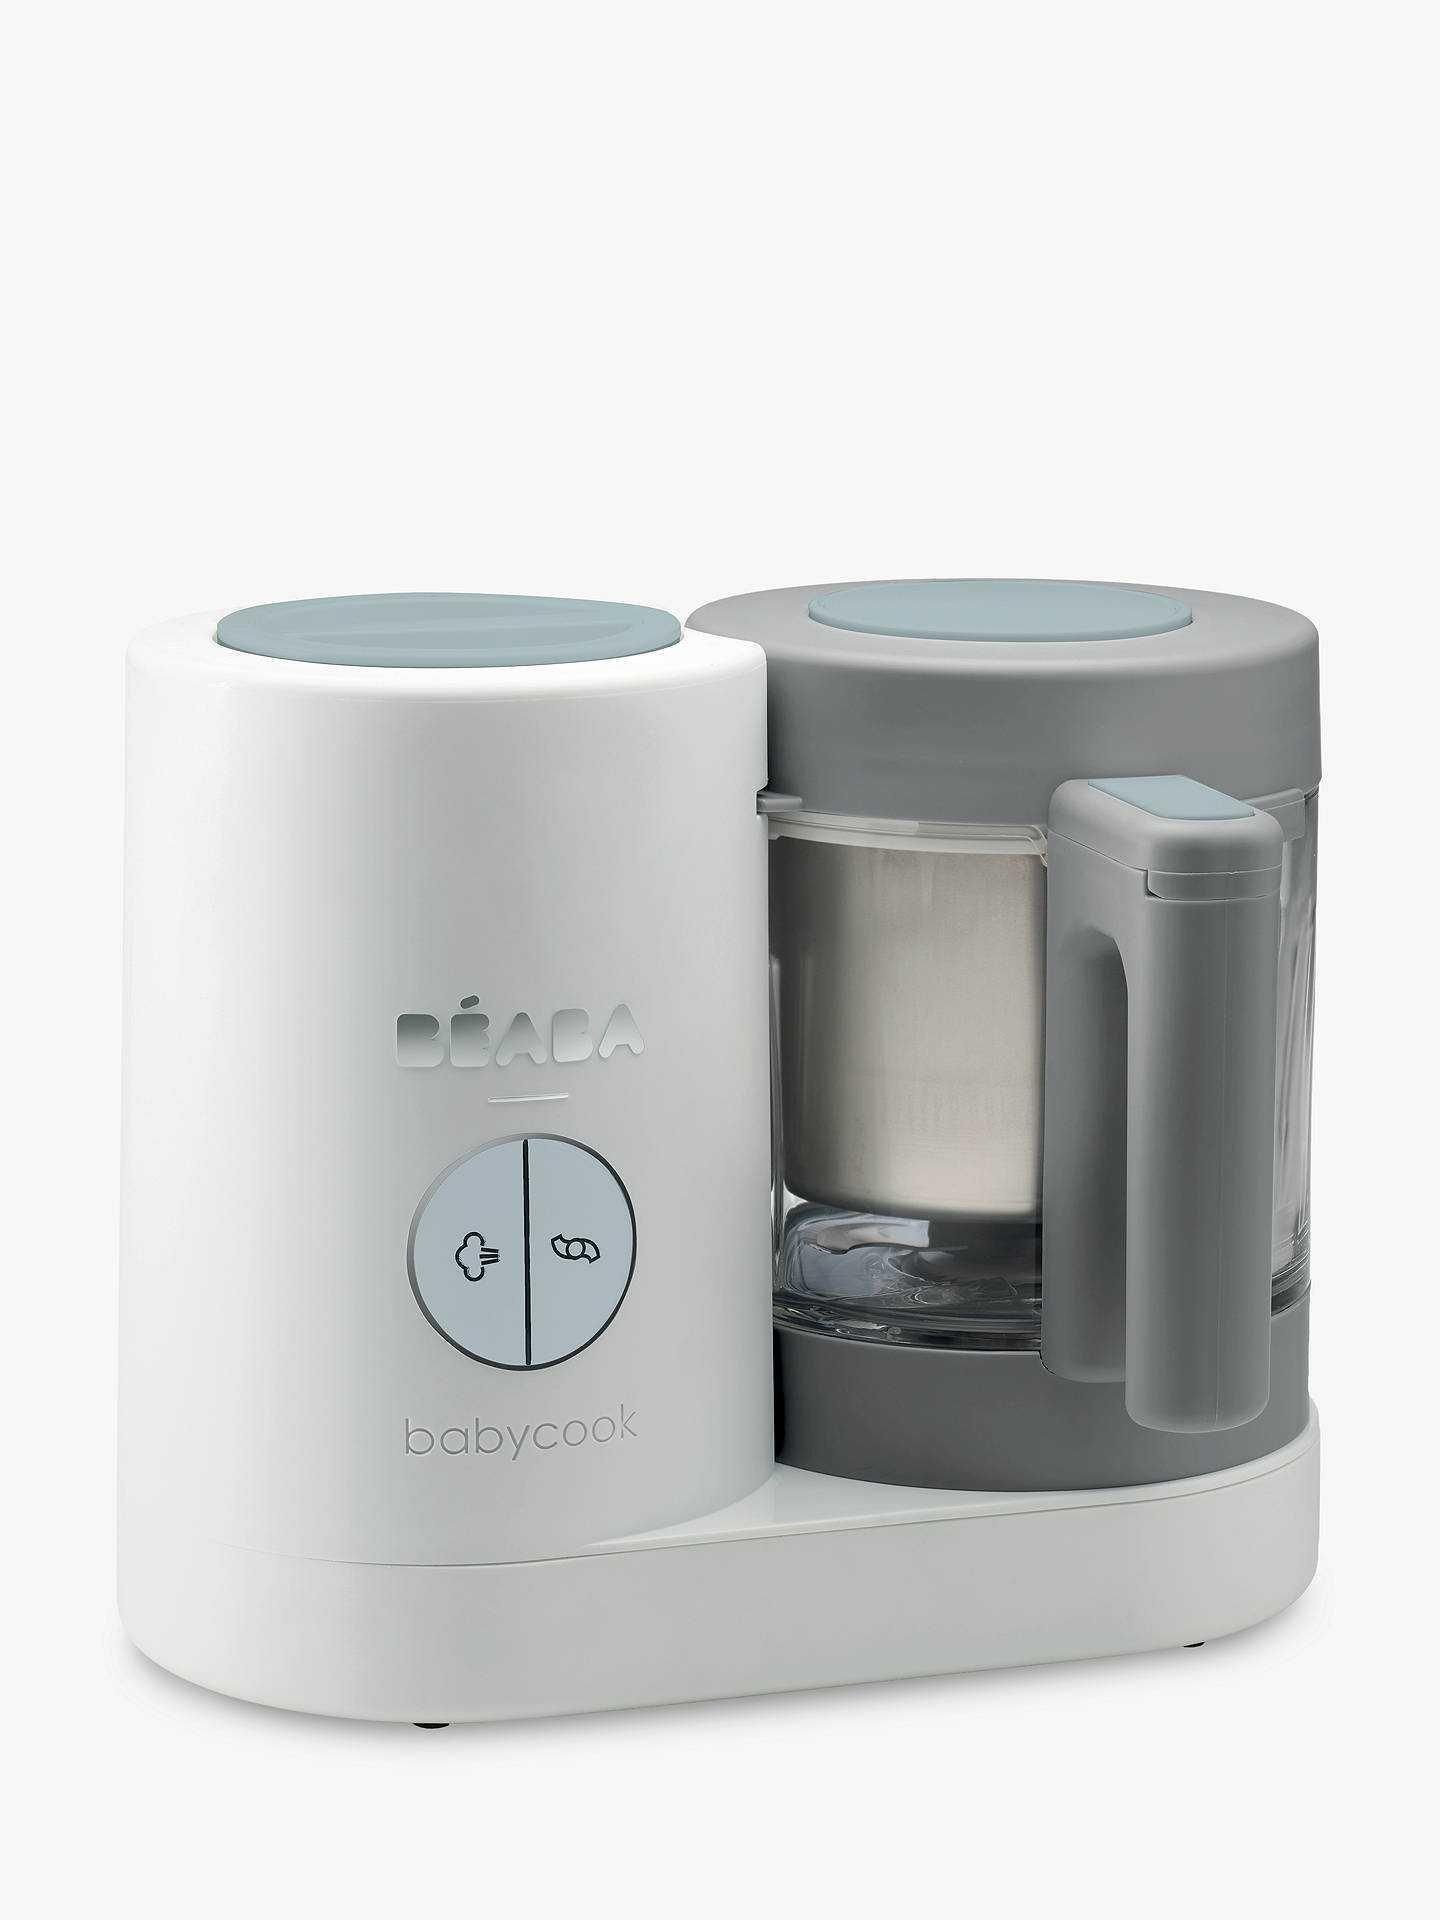 Rrp £160 Boxed Beaba Babycook Neo Healthy Cooking System Blender For Babies